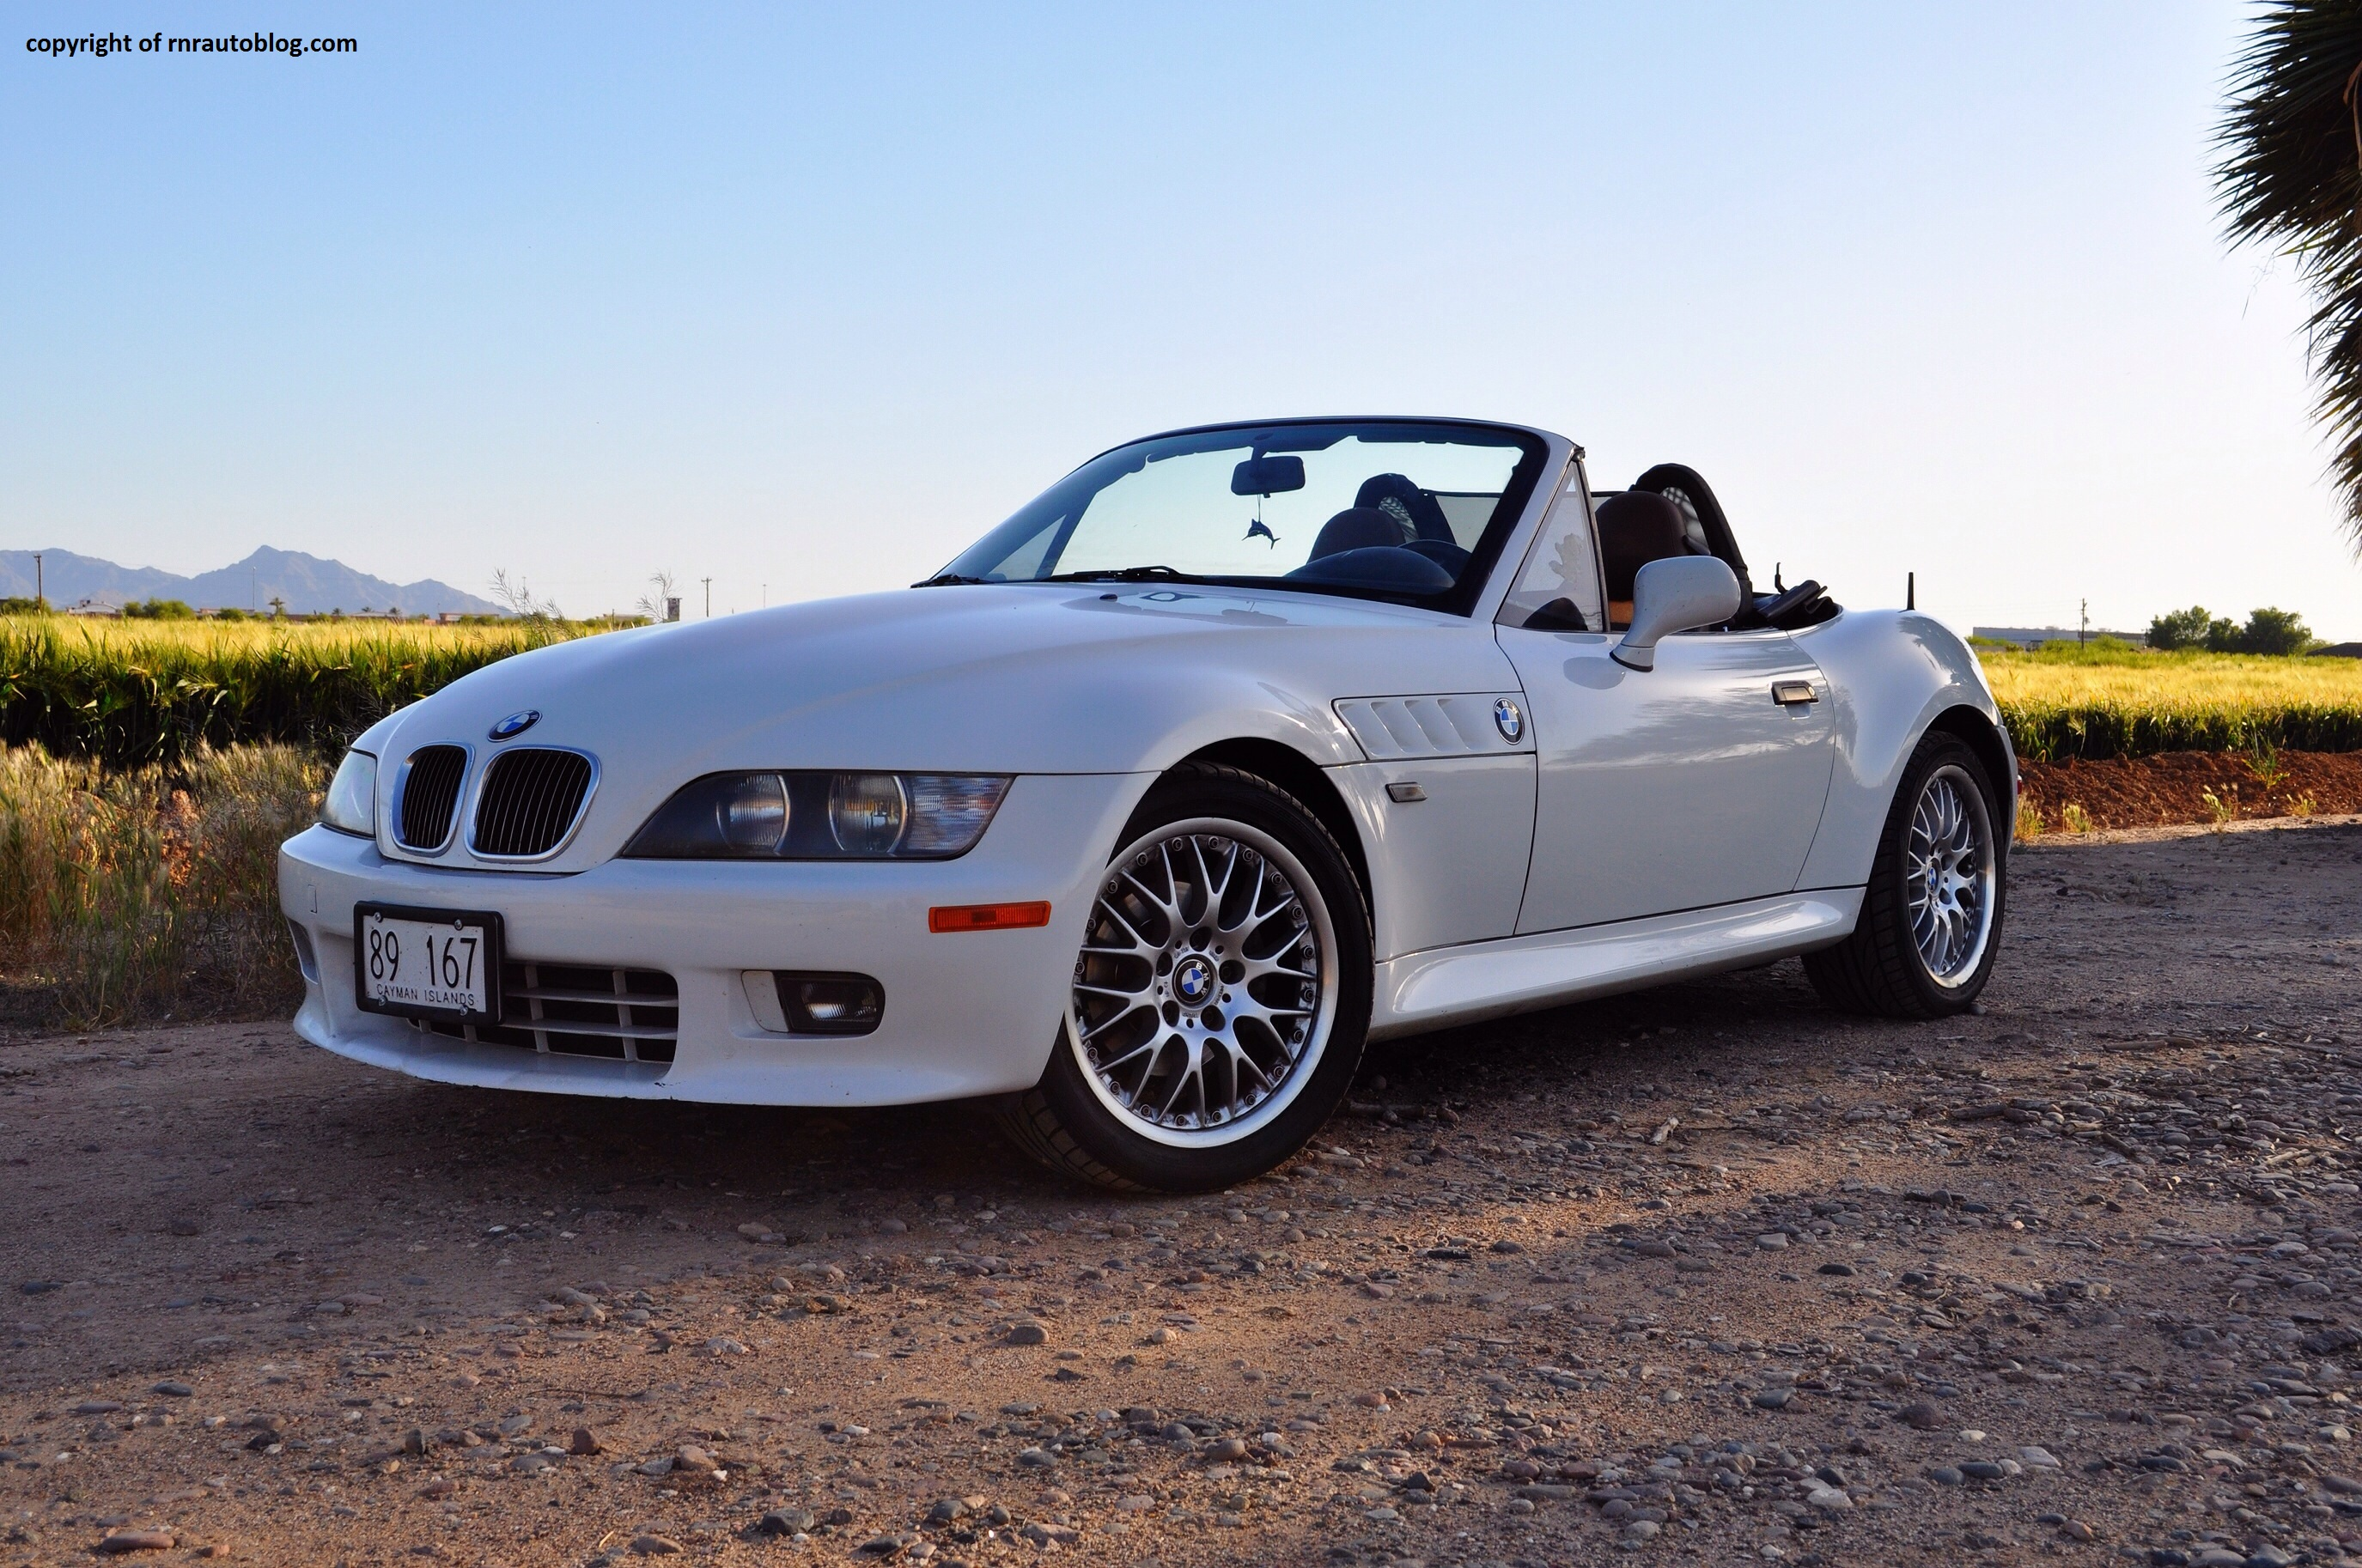 2000 Bmw Z3 Road Test Rnr Automotive Blog